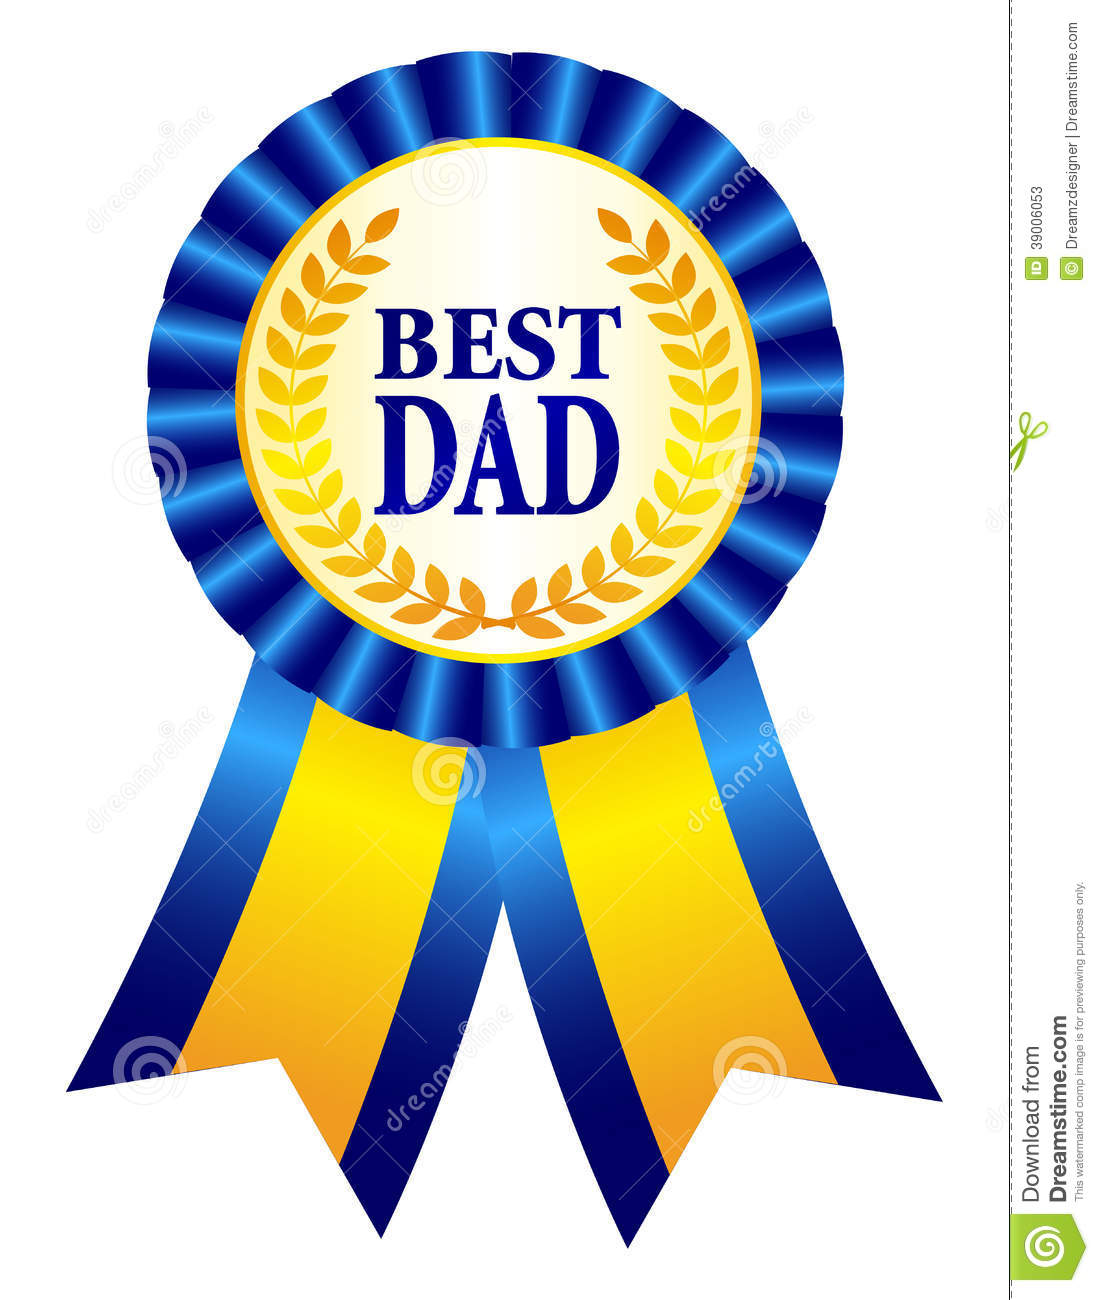 Fathers day cards pictures